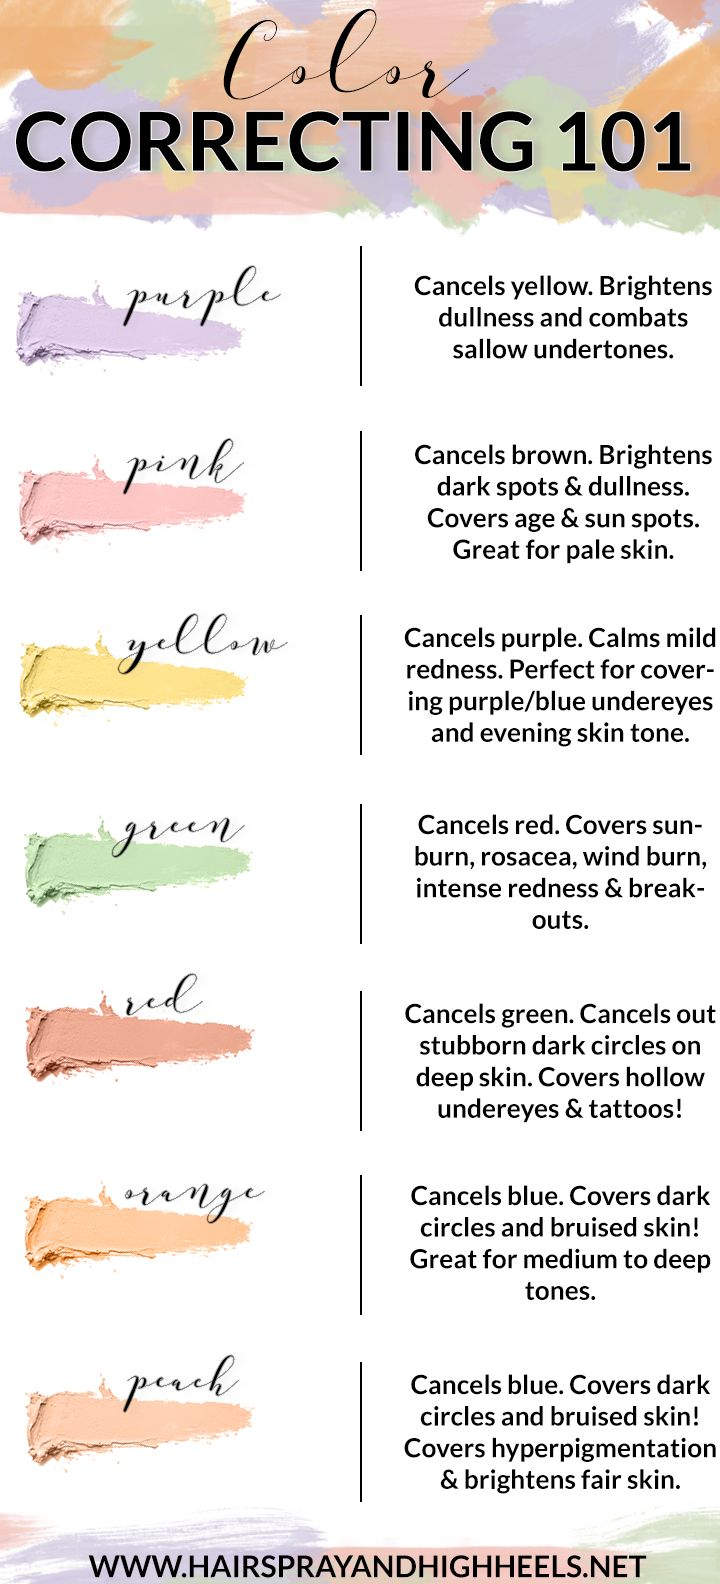 Color correcting is a huge beauty trend right now. Here's how to do it right.